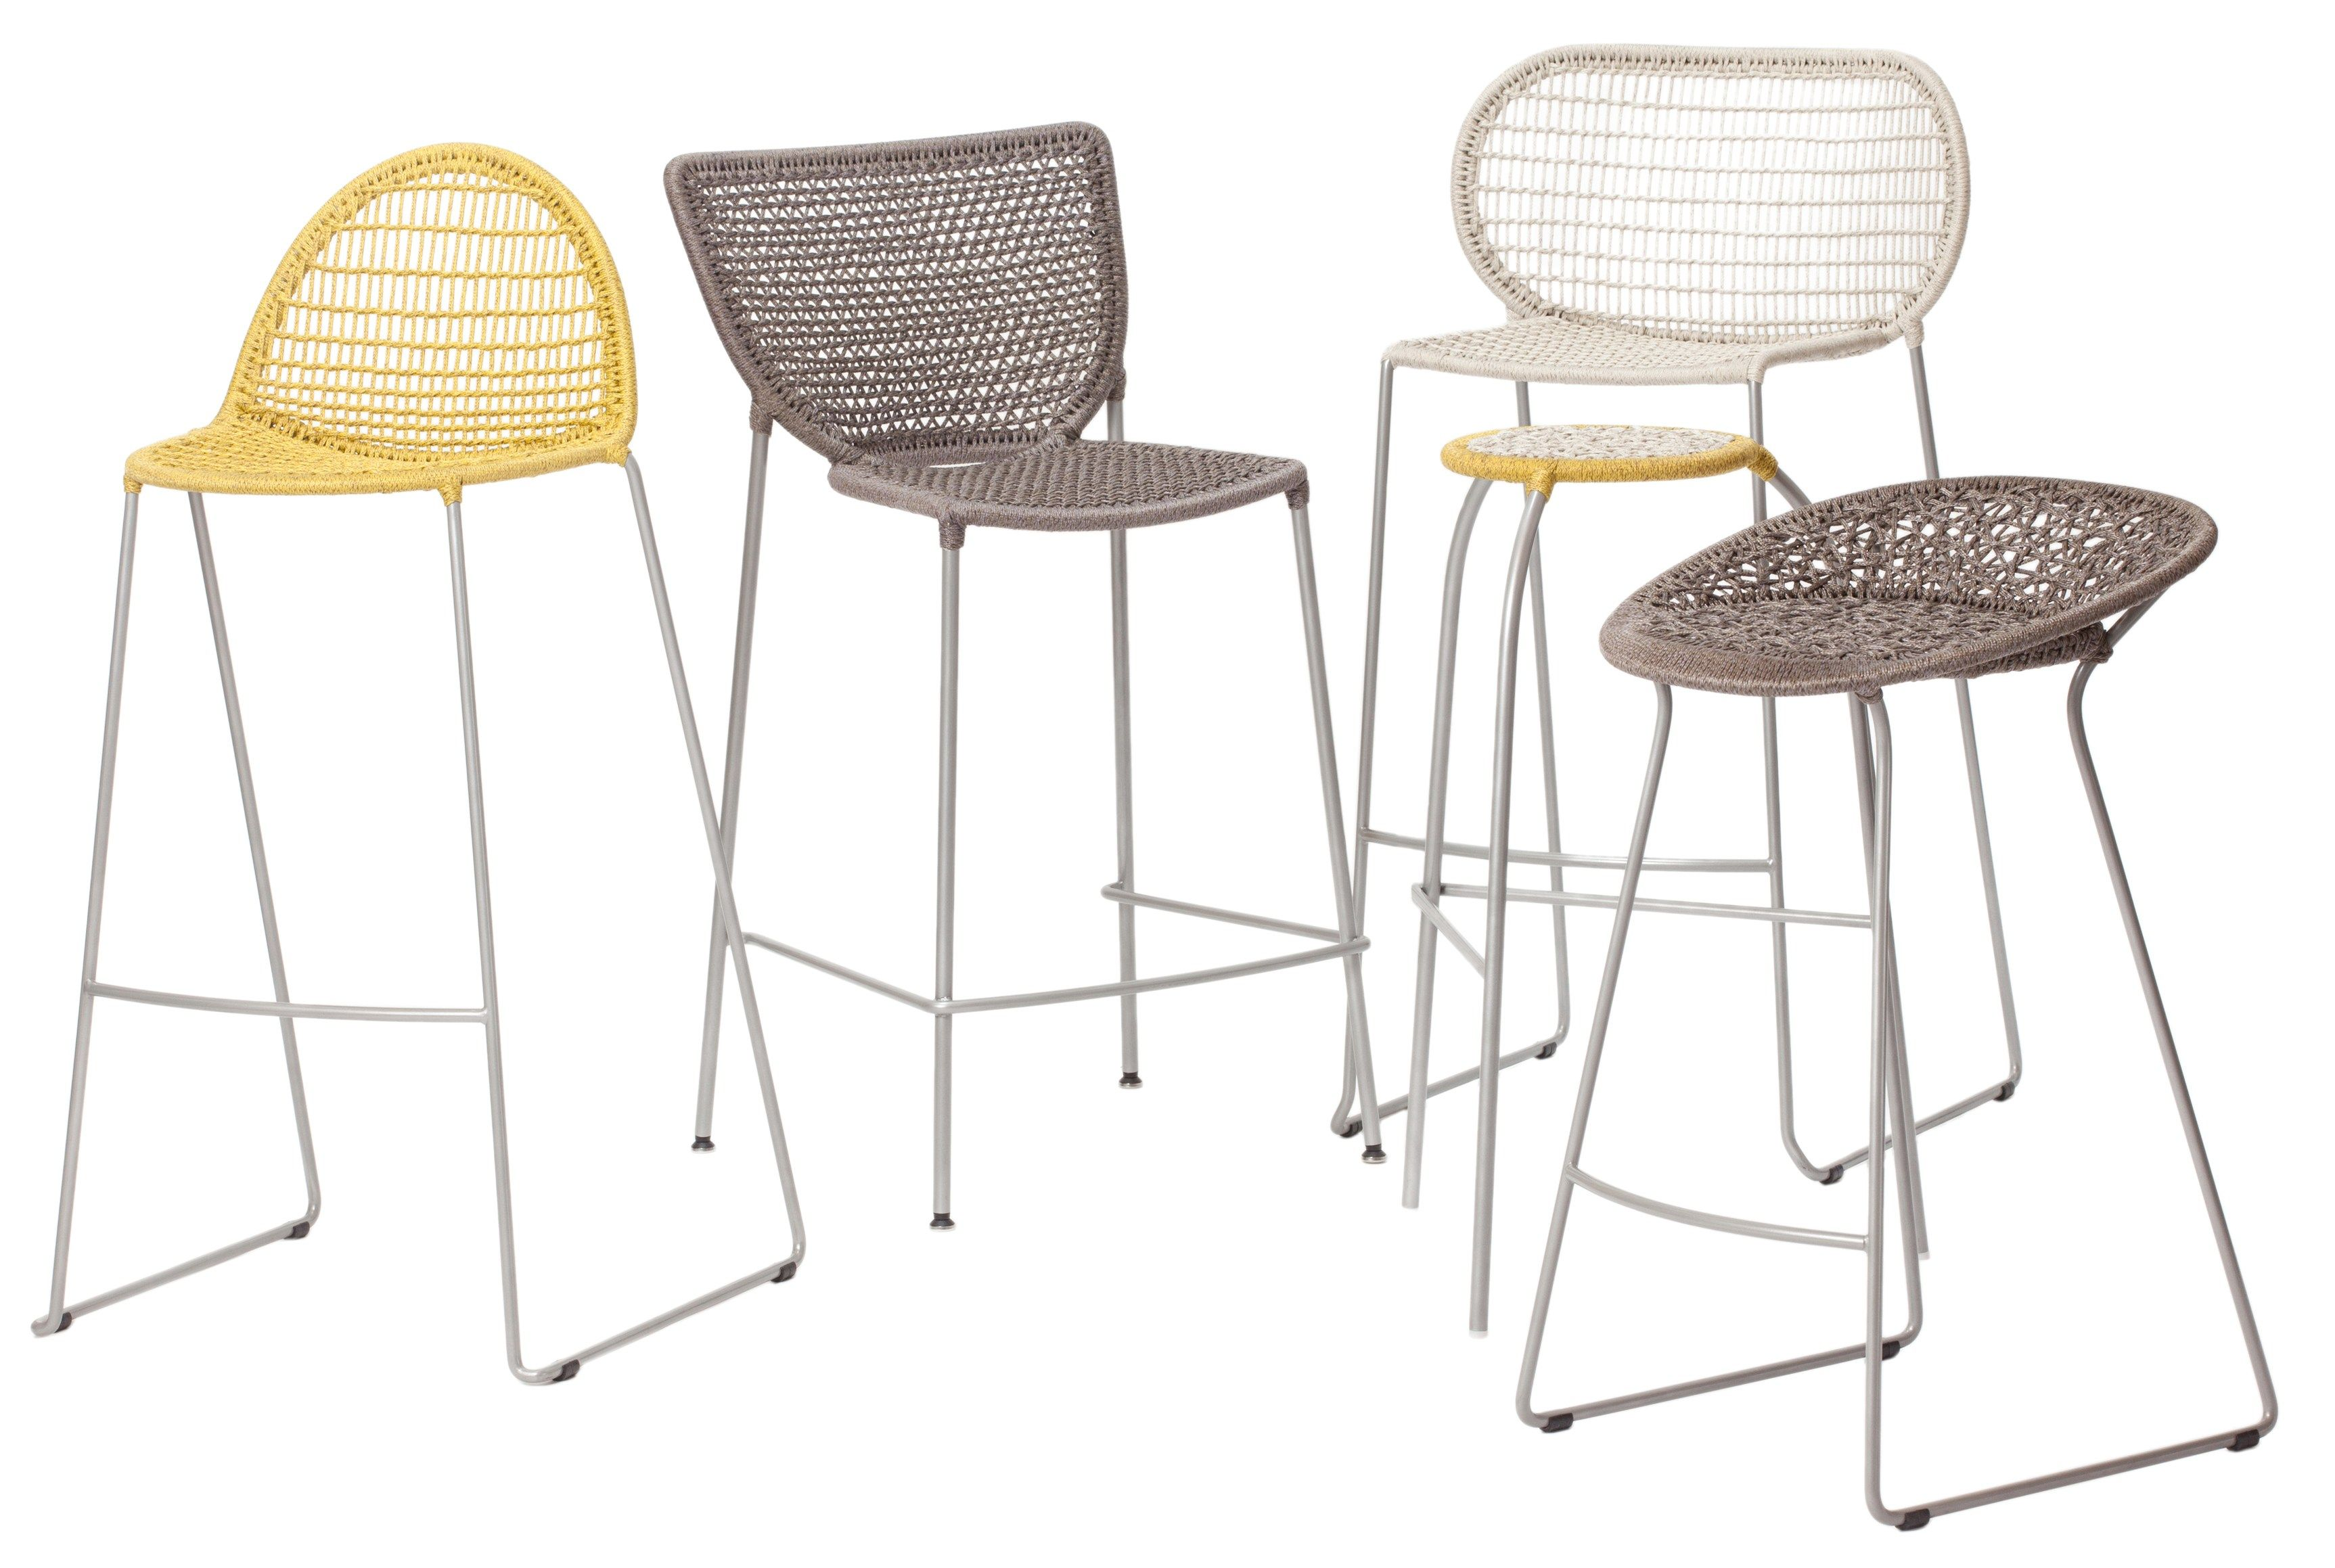 Bocca Chair Bar Stool By Gaga Design In Home Furnishings Category